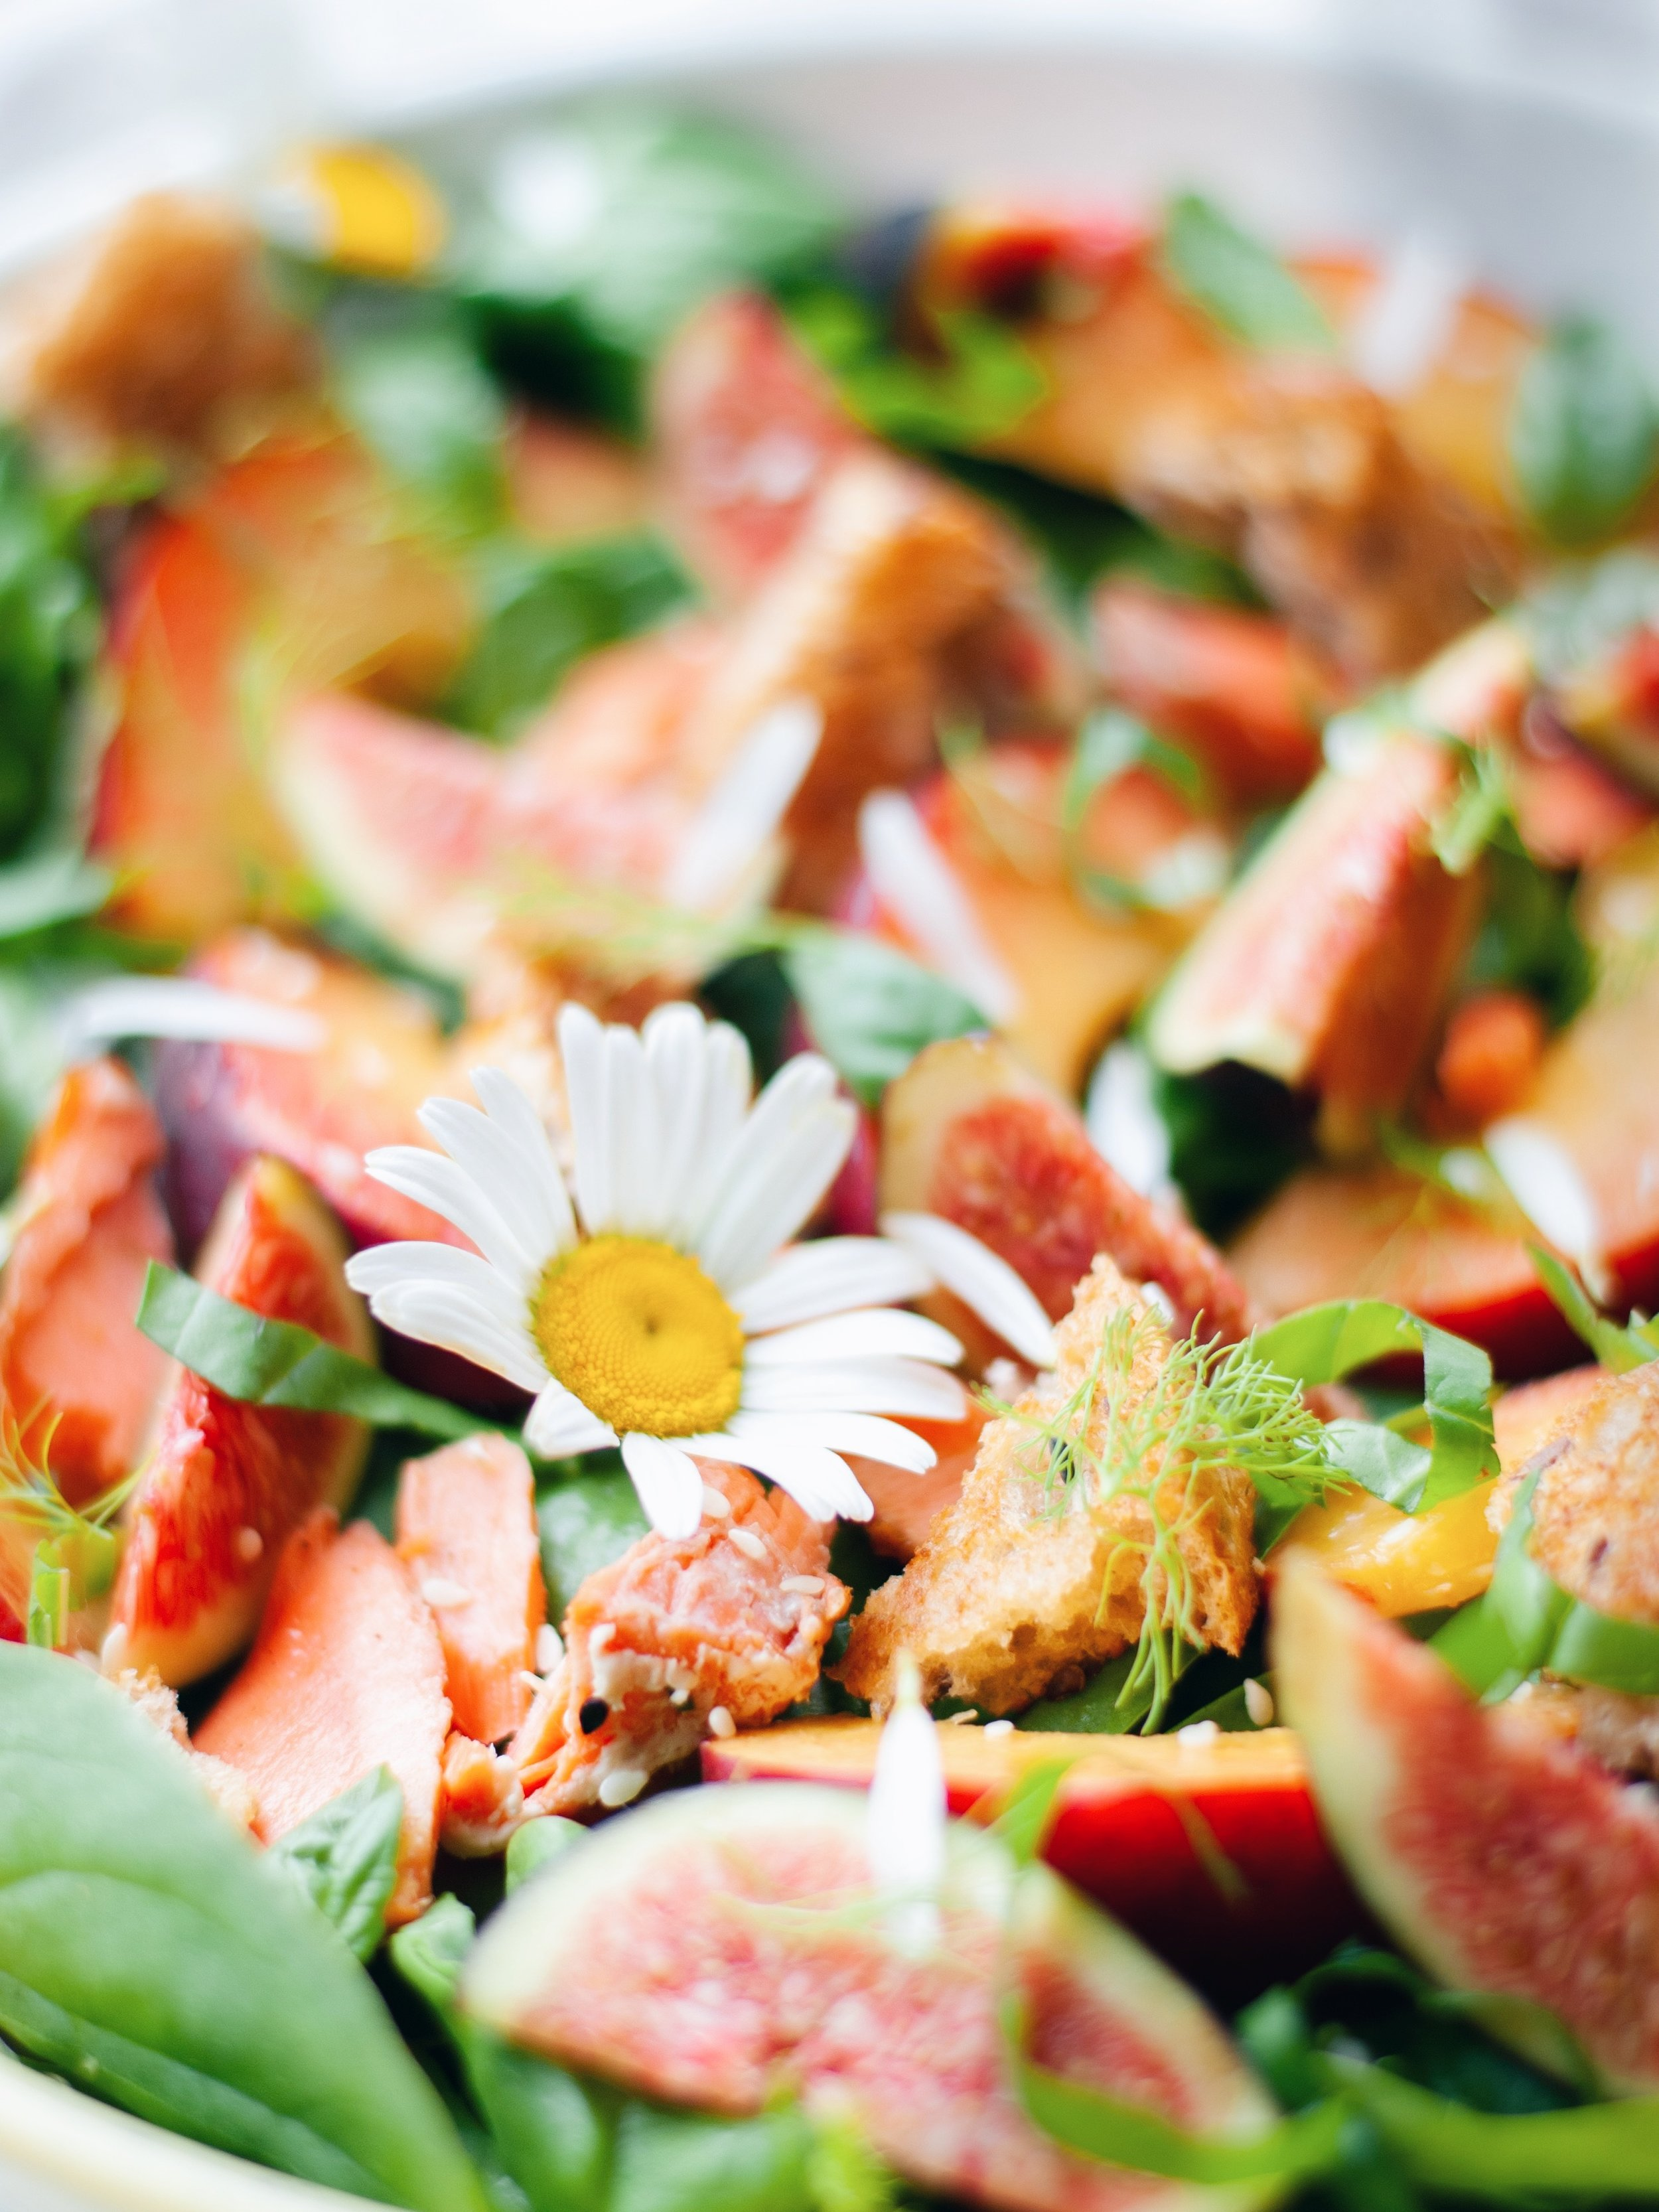 Summery Peach and Wild Salmon Panzanella Salad  - Foody First - This salads makes all my summer food dreams come true! #glutenfree #summersalad #peaches #panzanella